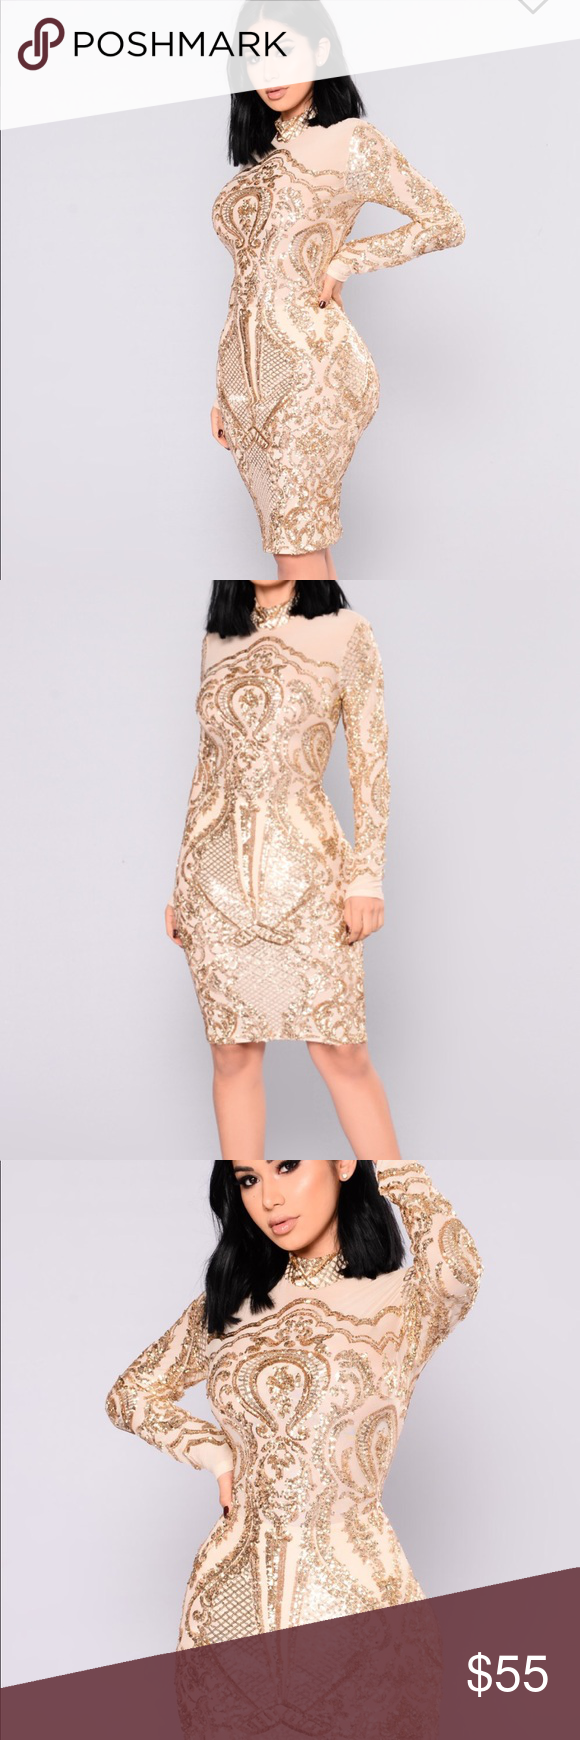 a286b26a 💫✨Calcy Sequin Gold Midi dress💫✨ PRODUCT DETAILS Gold Midi dress Sequin  Mesh Dress Mock Neck Long Sleeves Back Zipper 100% Nylon Fashion Nova  Dresses ...